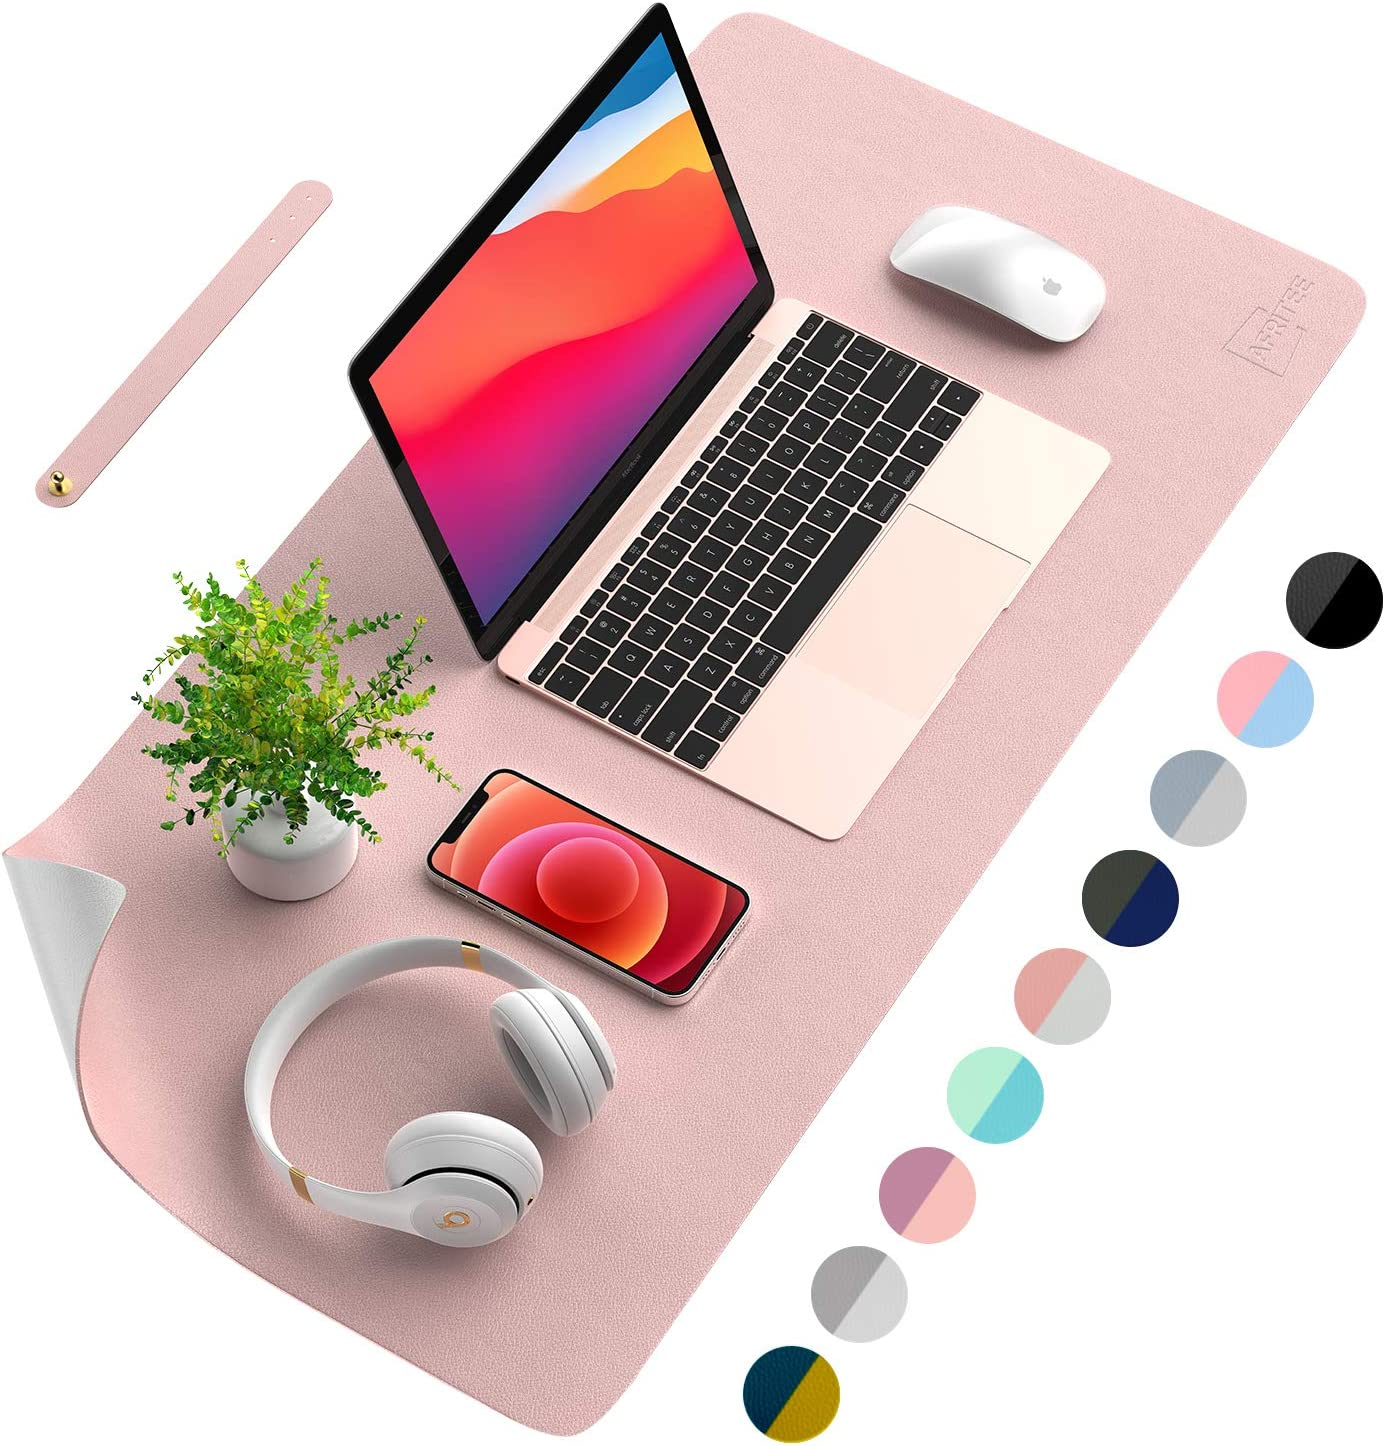 AFRITEE Desk Pad Desk Protector Mat - Dual Side PU Leather Desk Mat Large Mouse Pad, Writing Mat Waterproof Desk Cover Organizers Office Home Table Gaming Decor (Rose Pink/Silver, 23.6